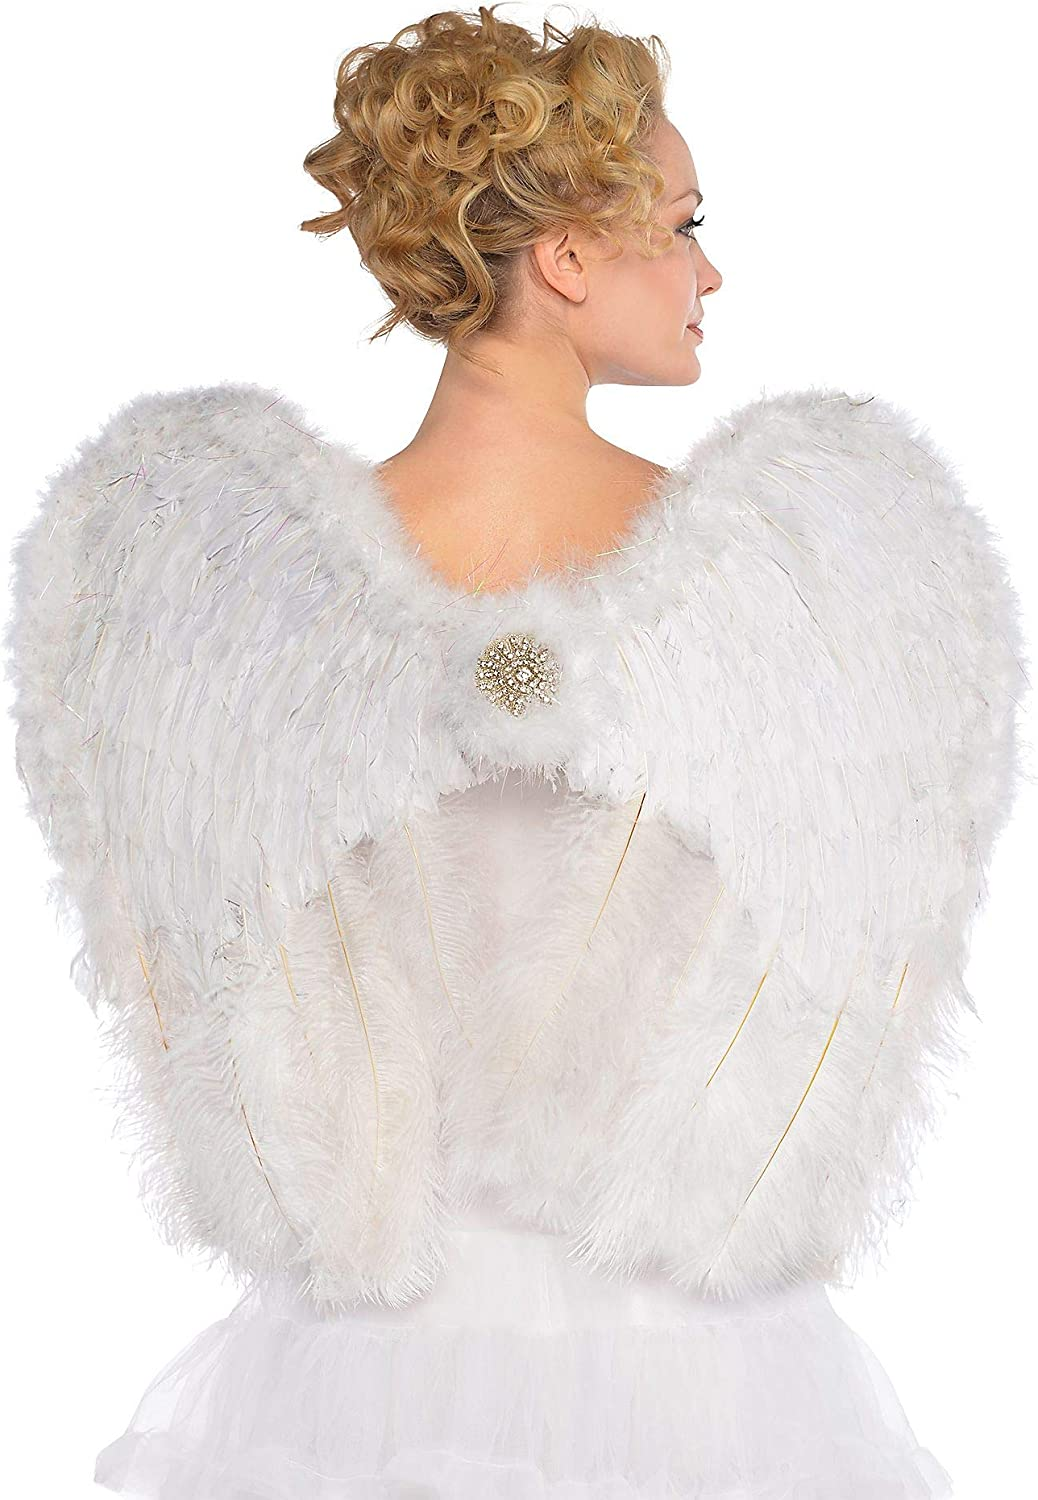 AMSCAN Deluxe Feather Angel Wings Halloween Costume Accessories for Adults, One Size